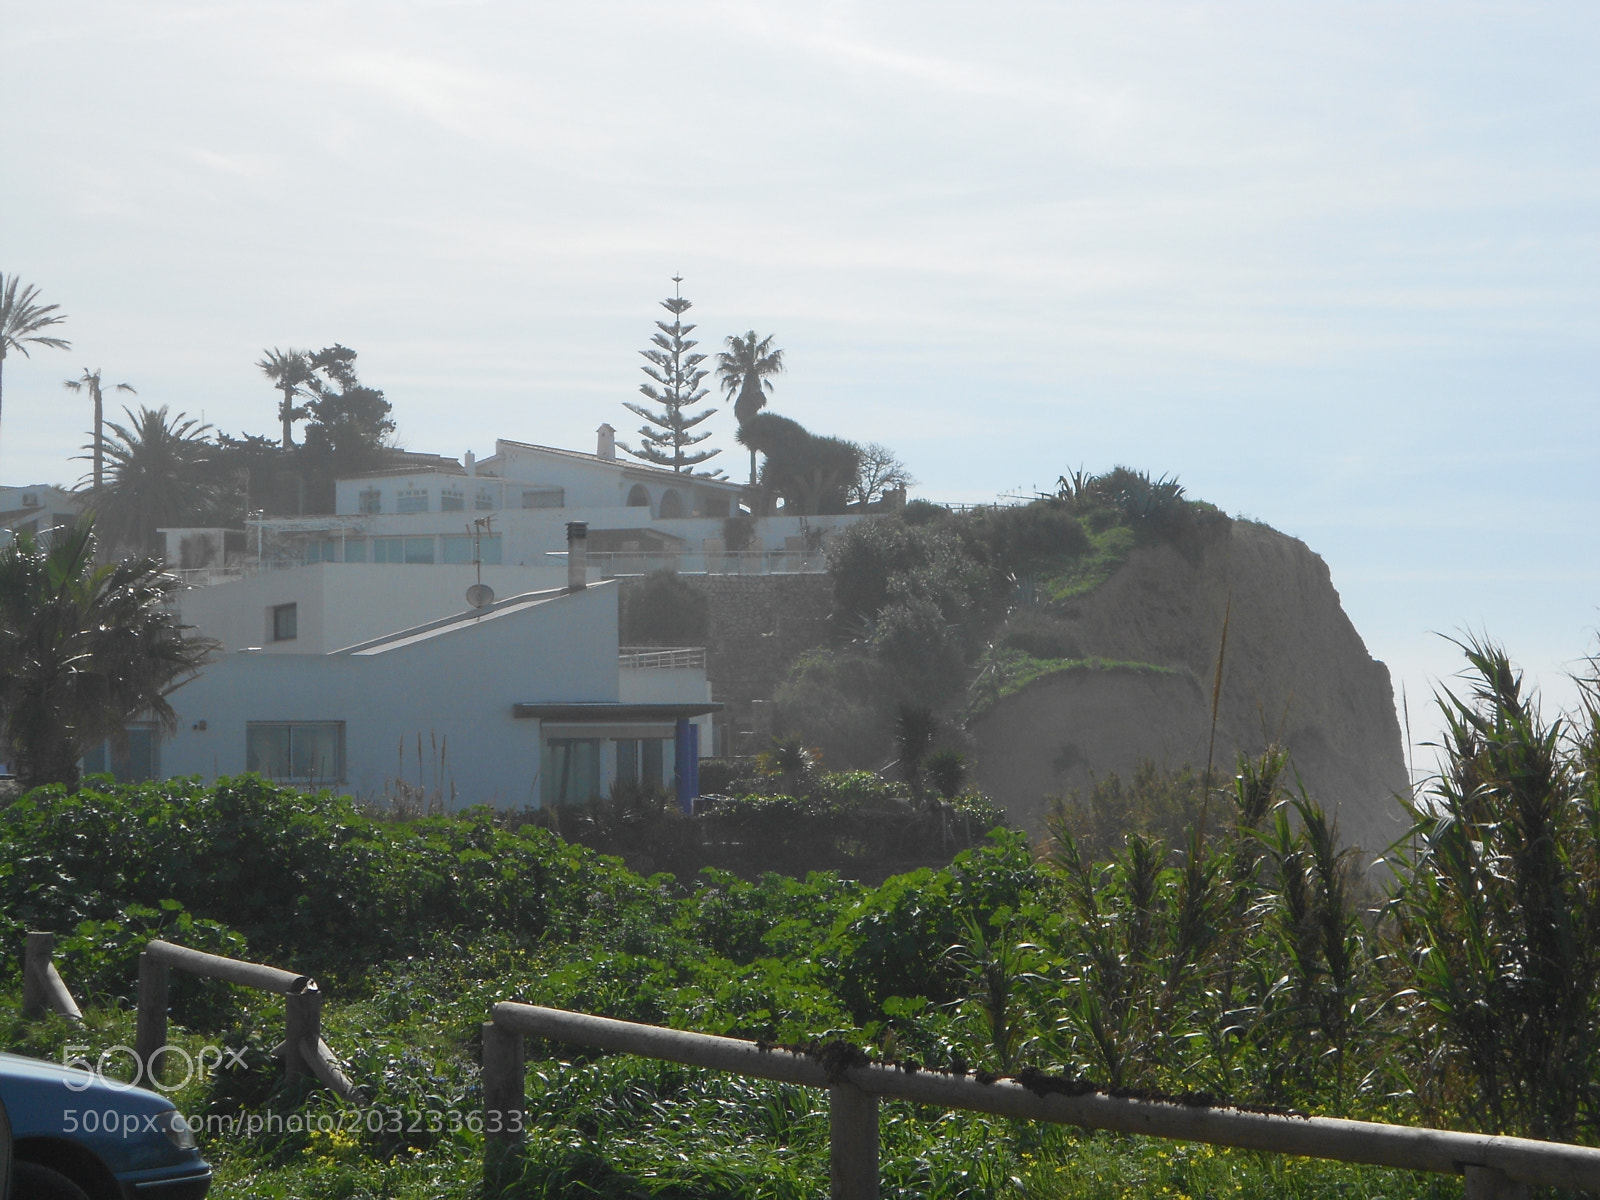 """Nikon COOLPIX S4150 sample photo. """"Cliff with white houses"""" photography"""